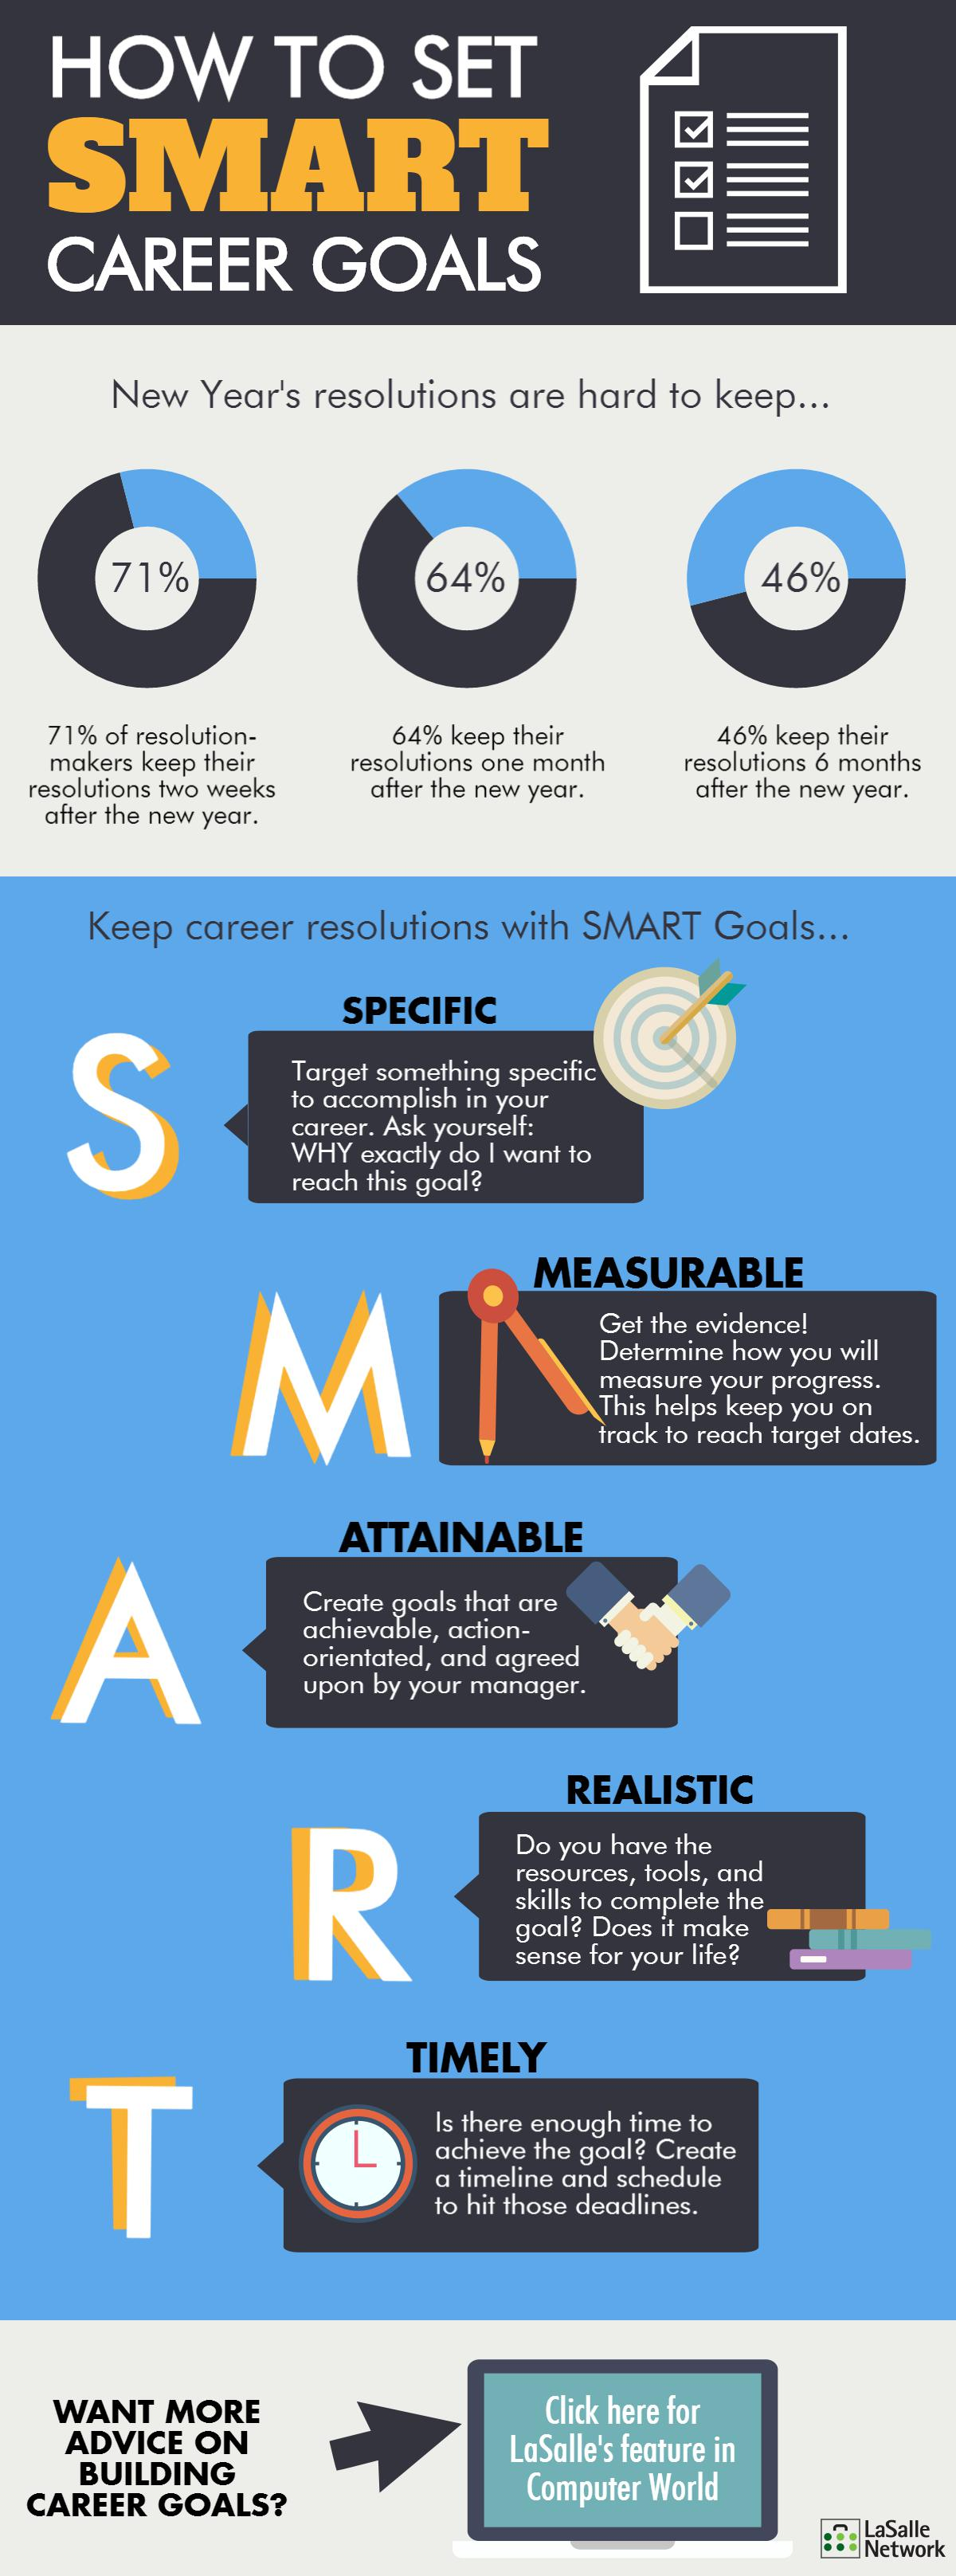 how to set smart career goals INFOGRAPHIC